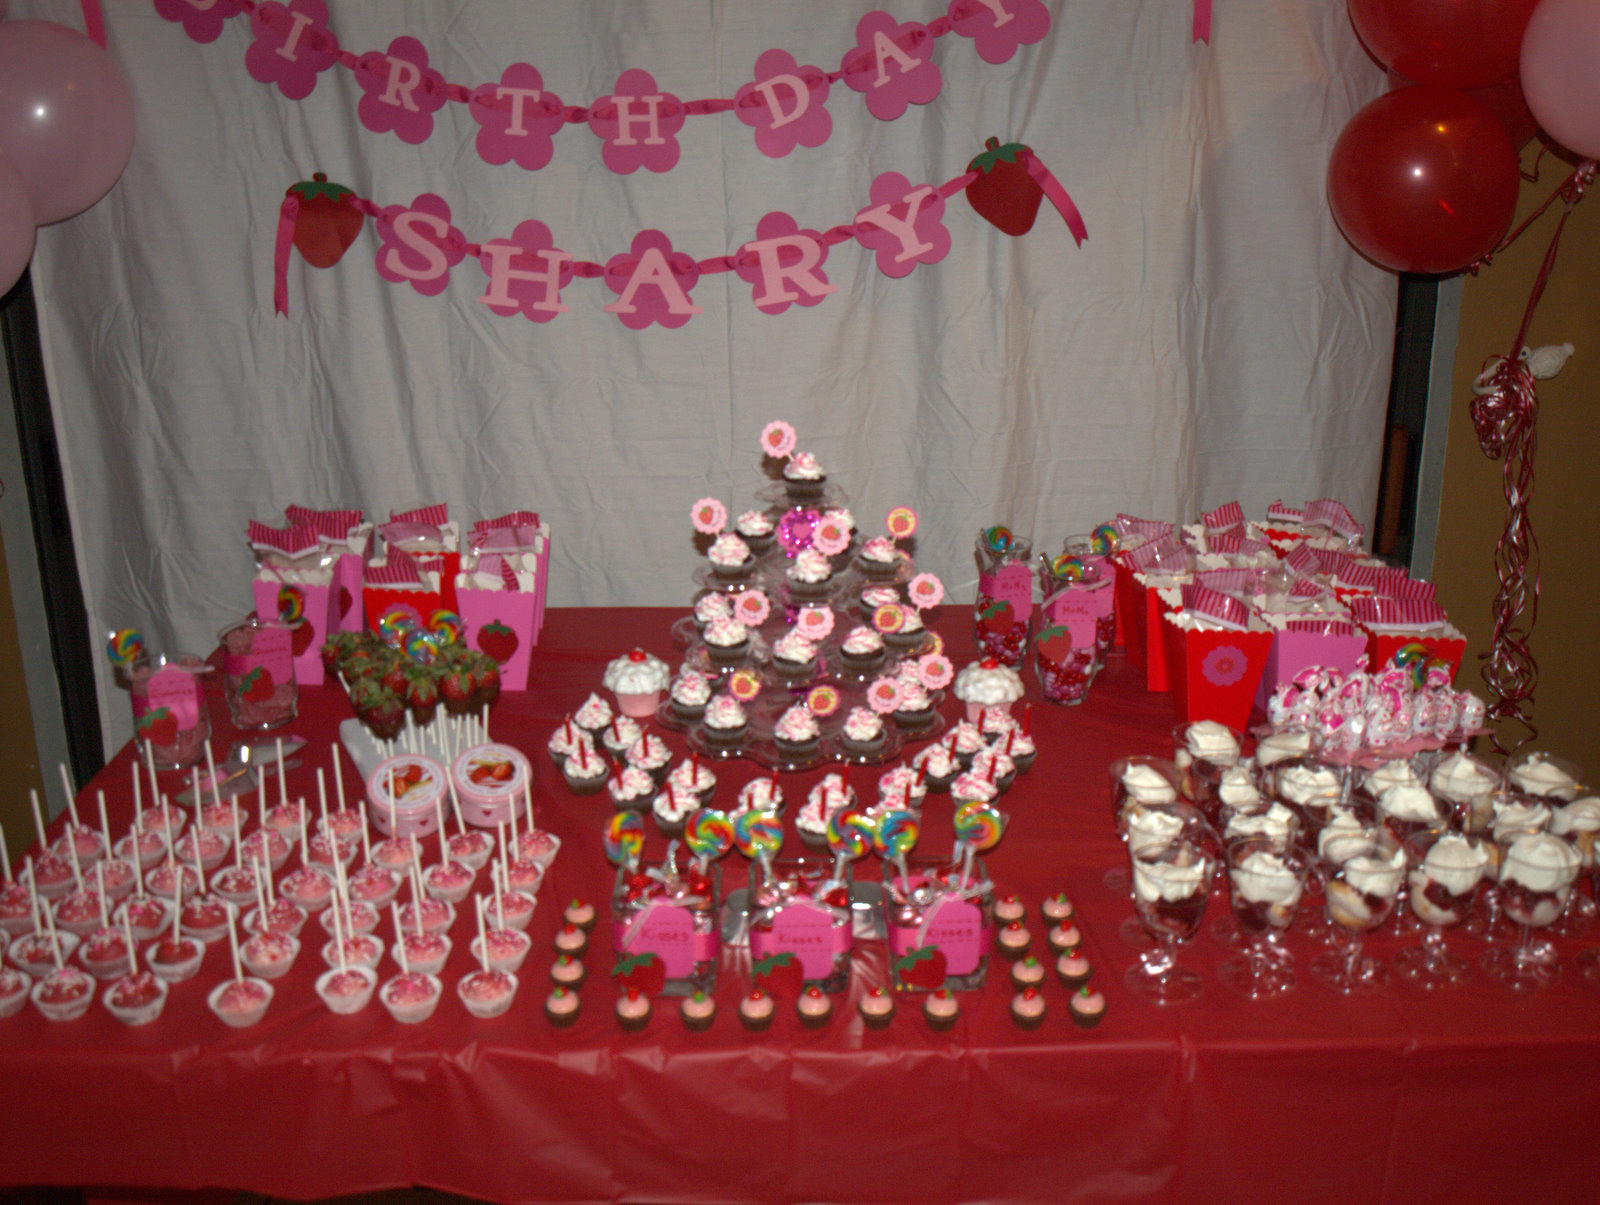 juneill 39 s parties sweets shary 39 s strawberry shortcake